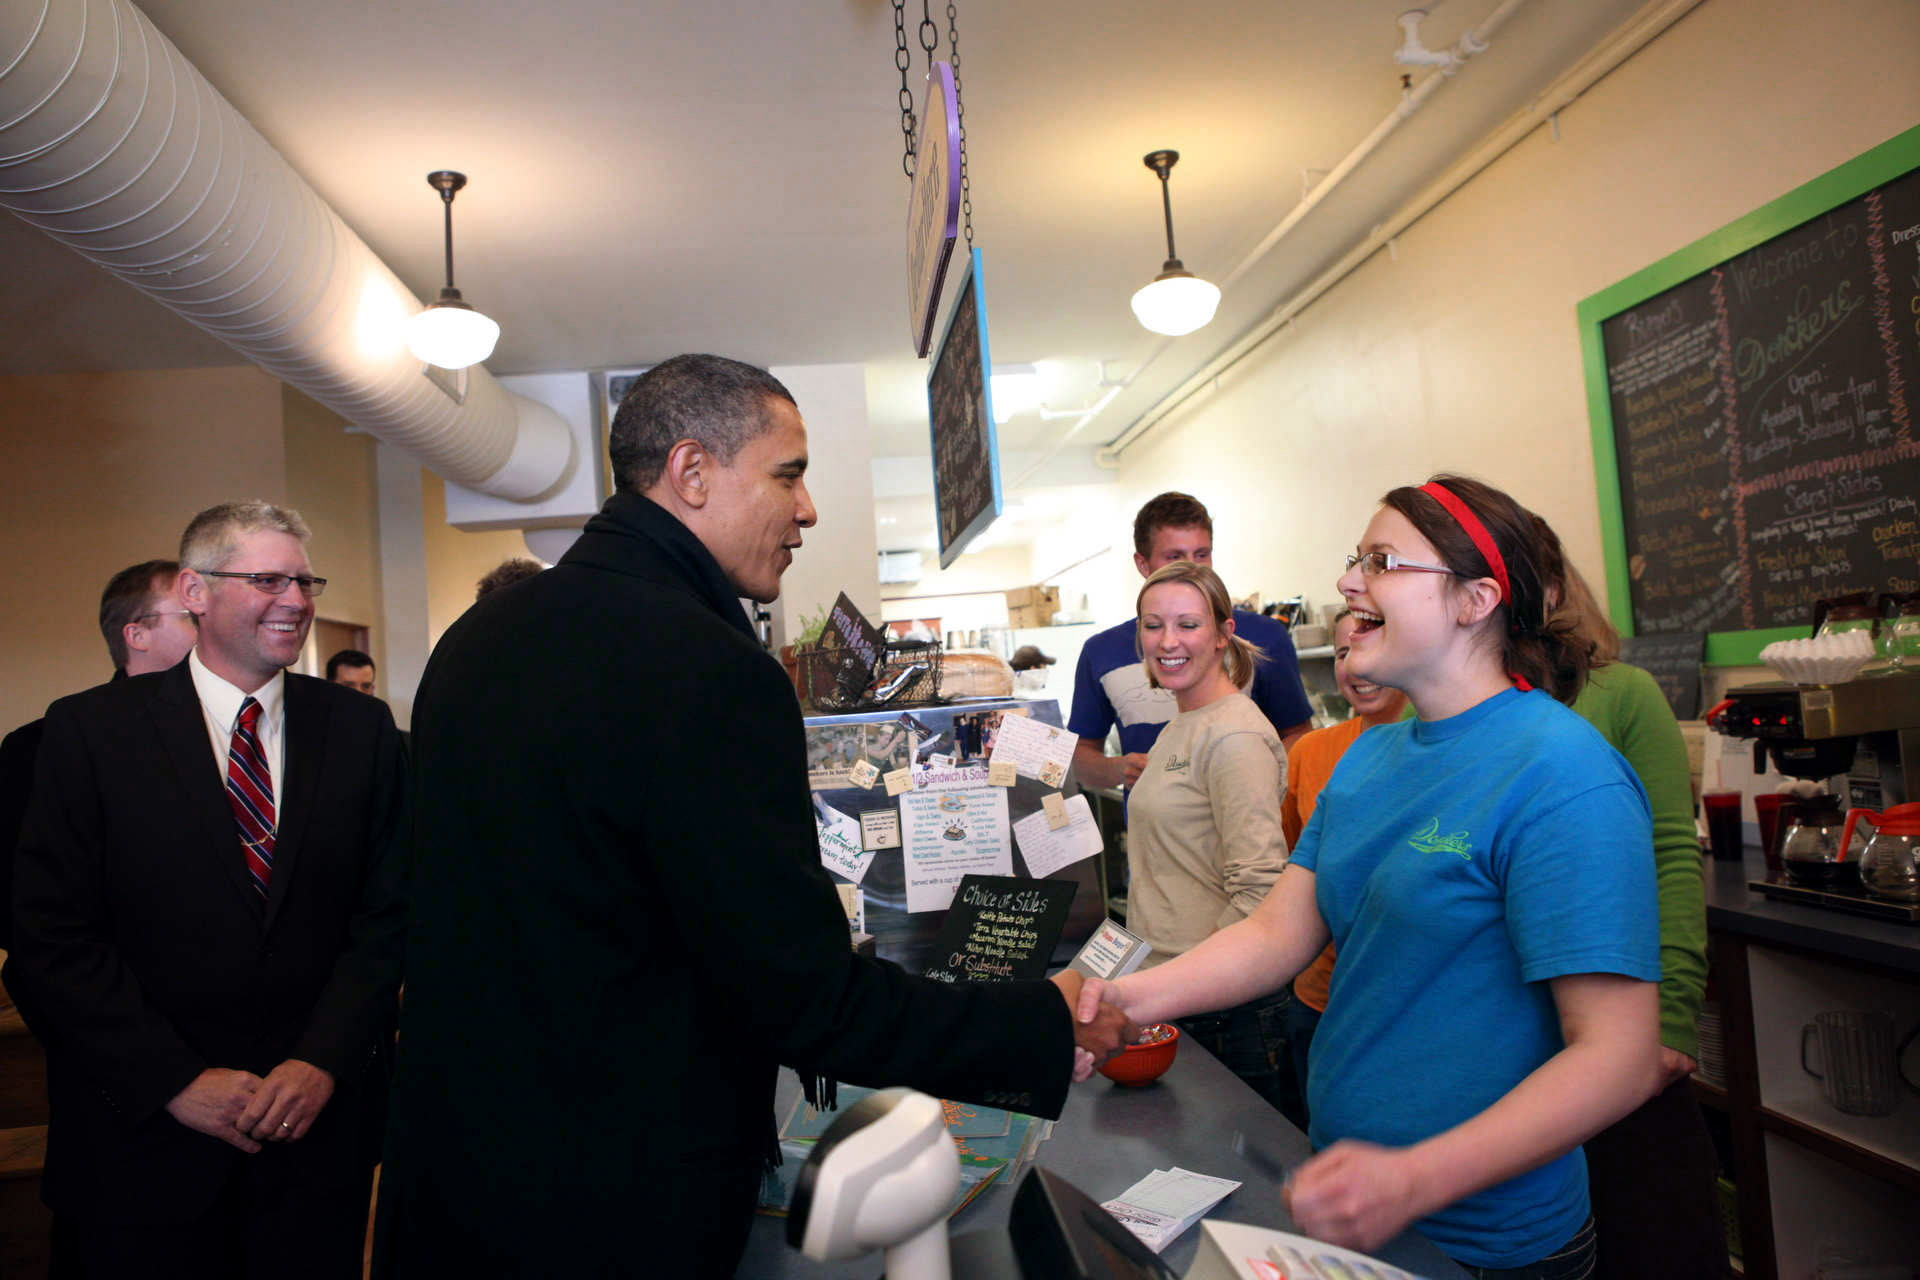 President Obama Meets Workers in Michigan